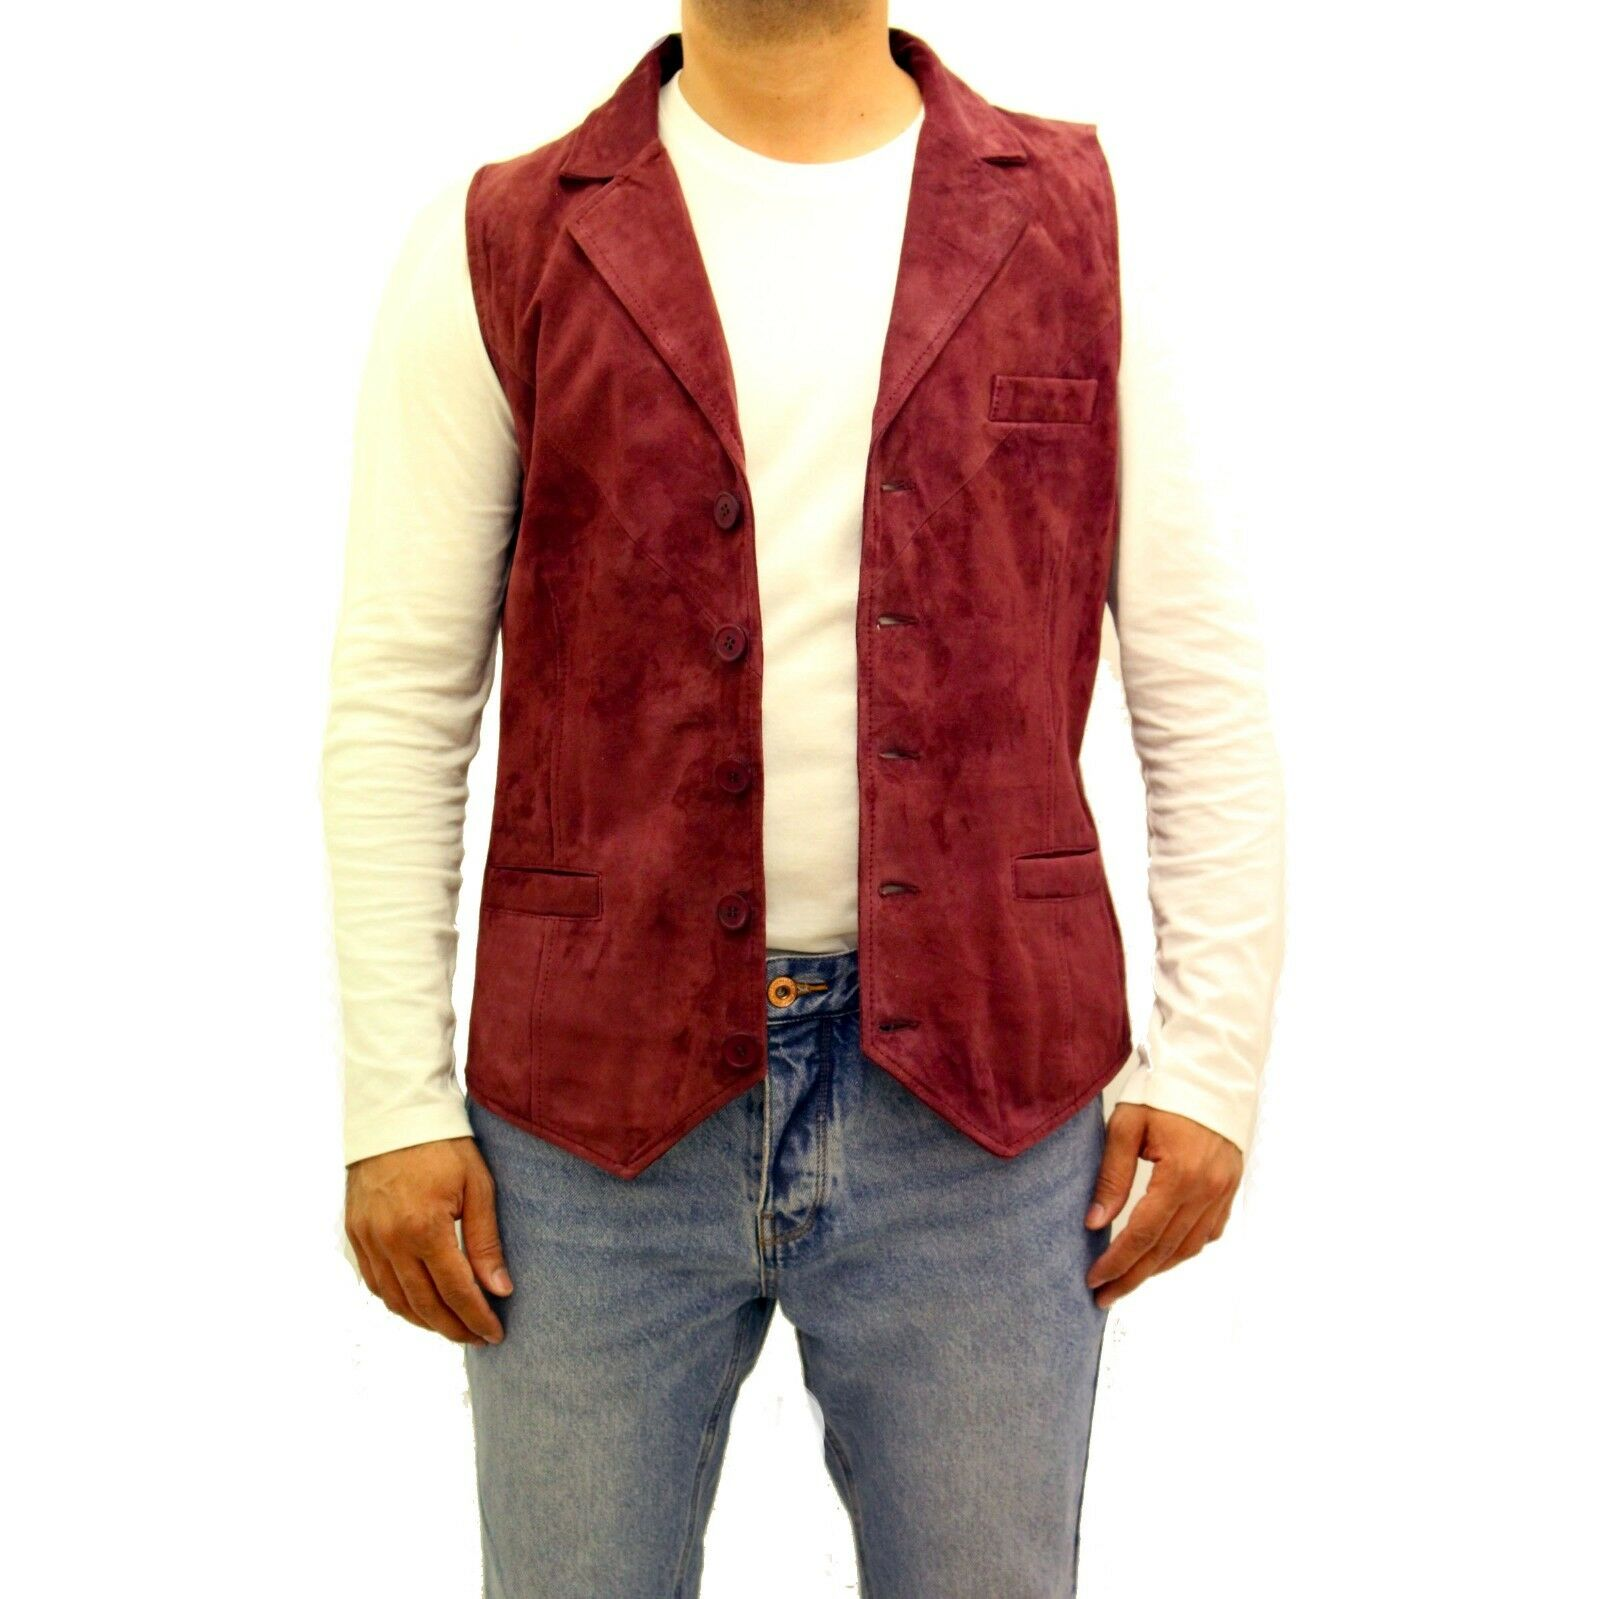 Mens Burgundy Red Soft Suede Leather Five Button Fitted Blazer Style Waistcoat